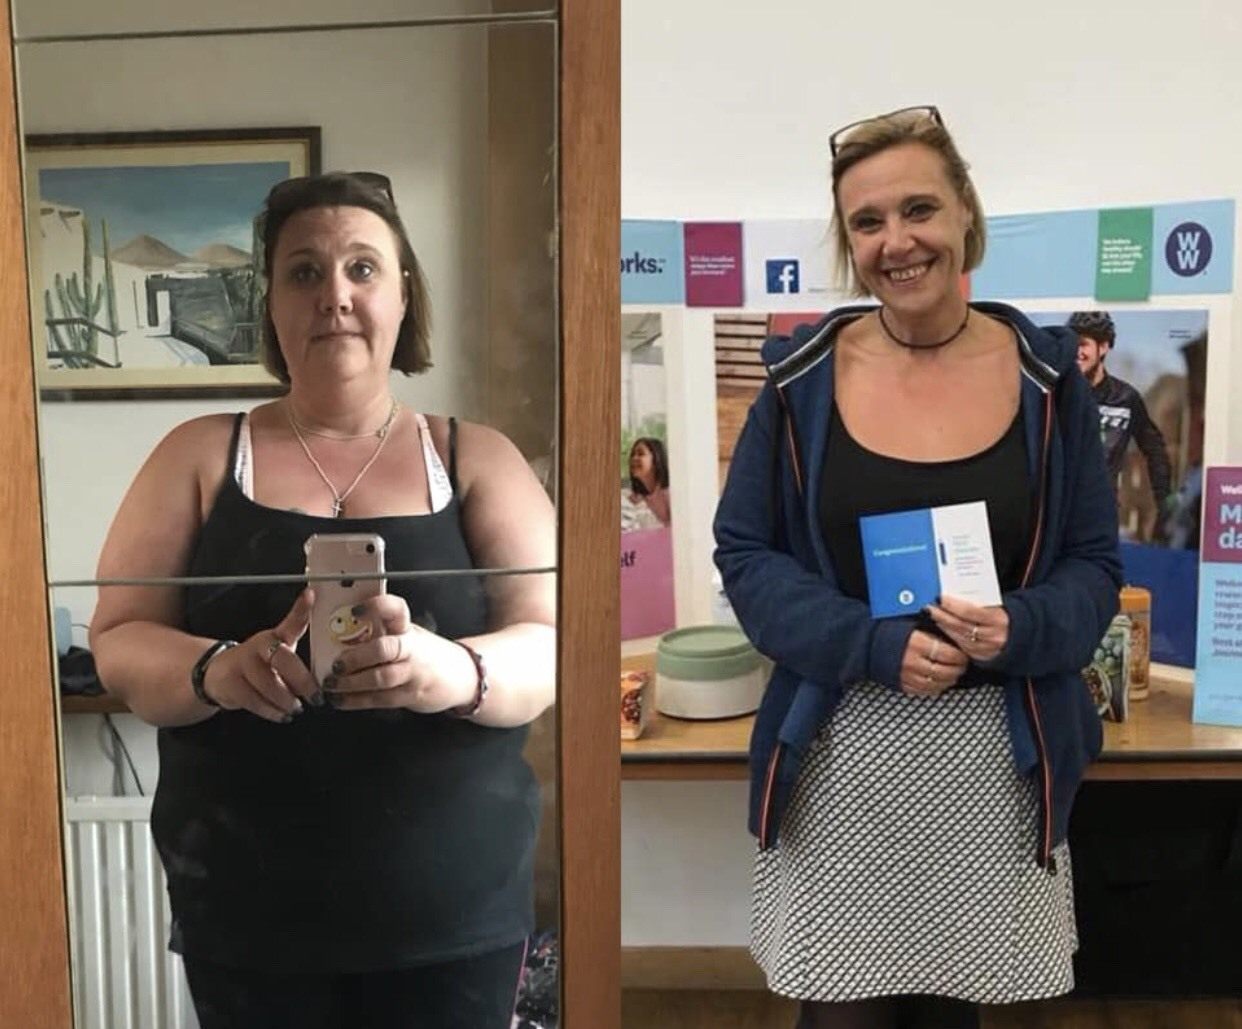 Two Women From Burnham Have Incredible Weight Loss Progress With Weight Watchers Bucks Free Press